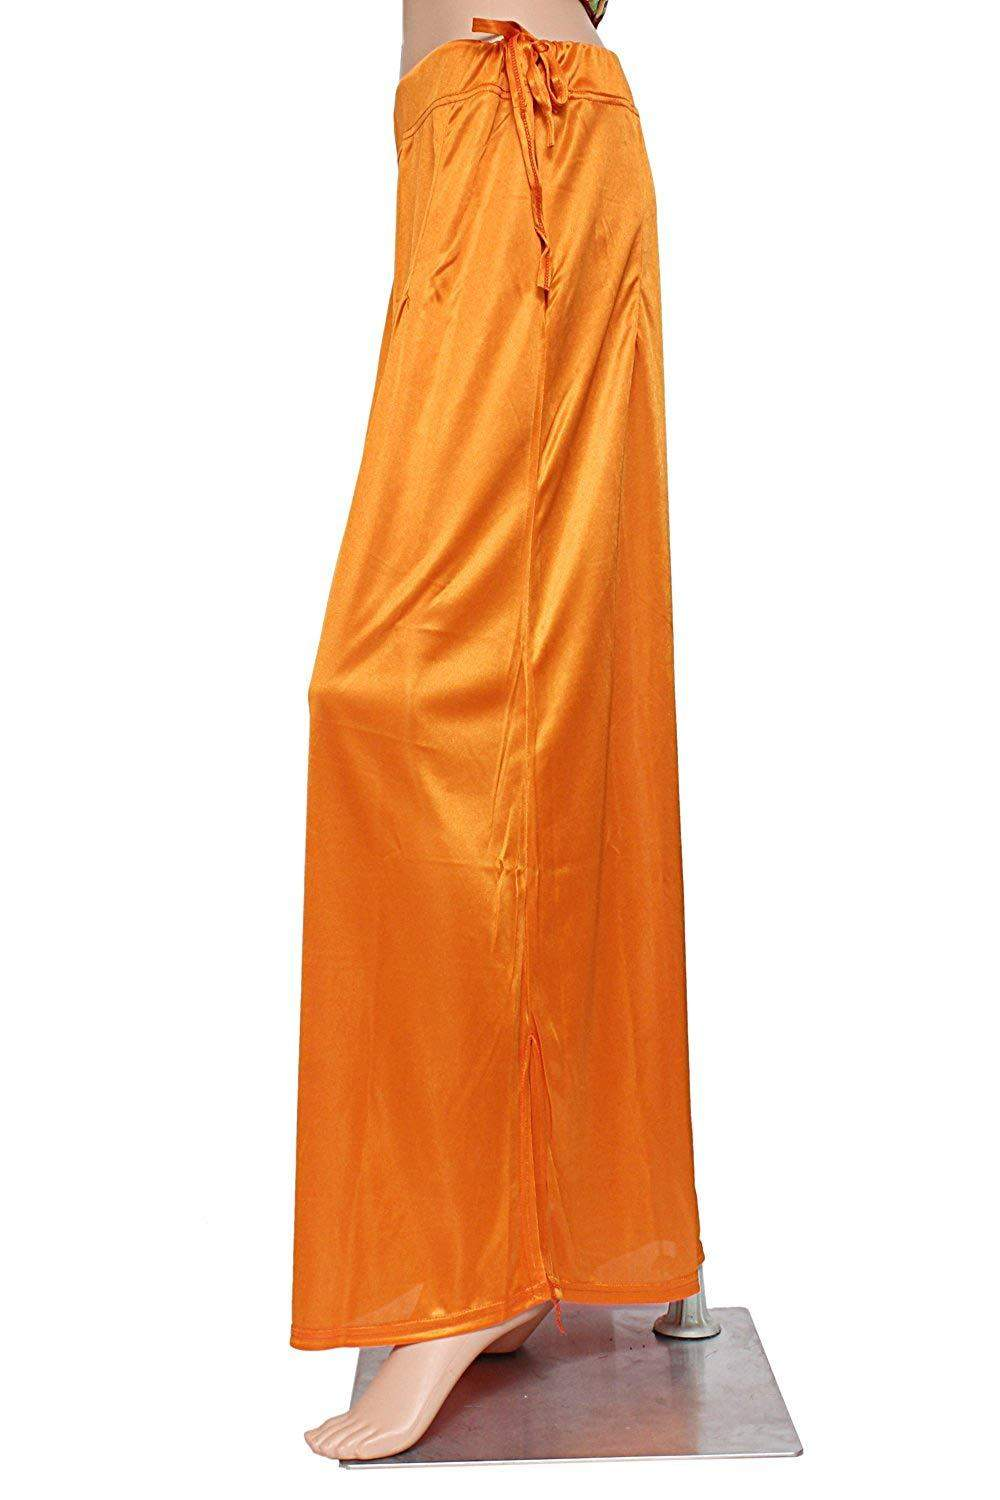 Premium Free Size Satin Women Sari Petticoat InSkirt For Saree (Yellow) - Bagaholics Gift